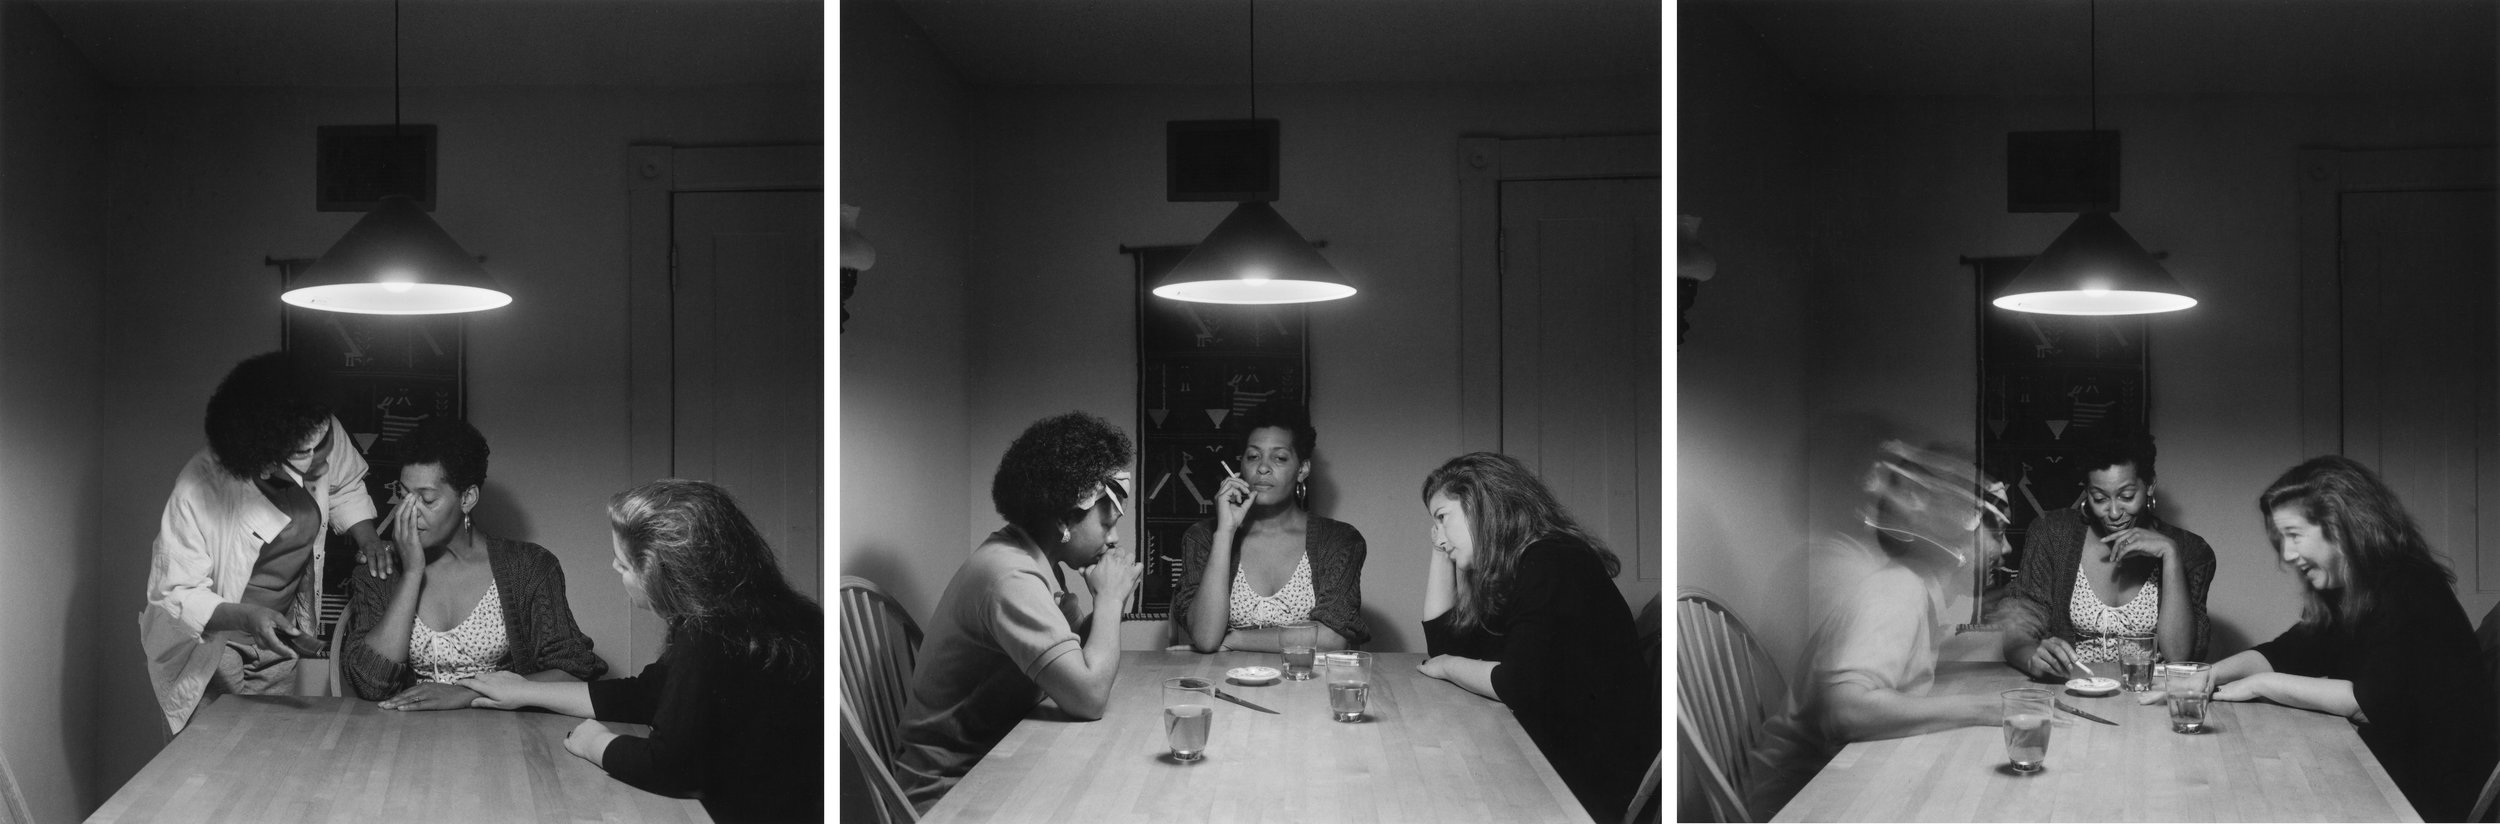 Untitled (Woman with friends) triptych, 1990